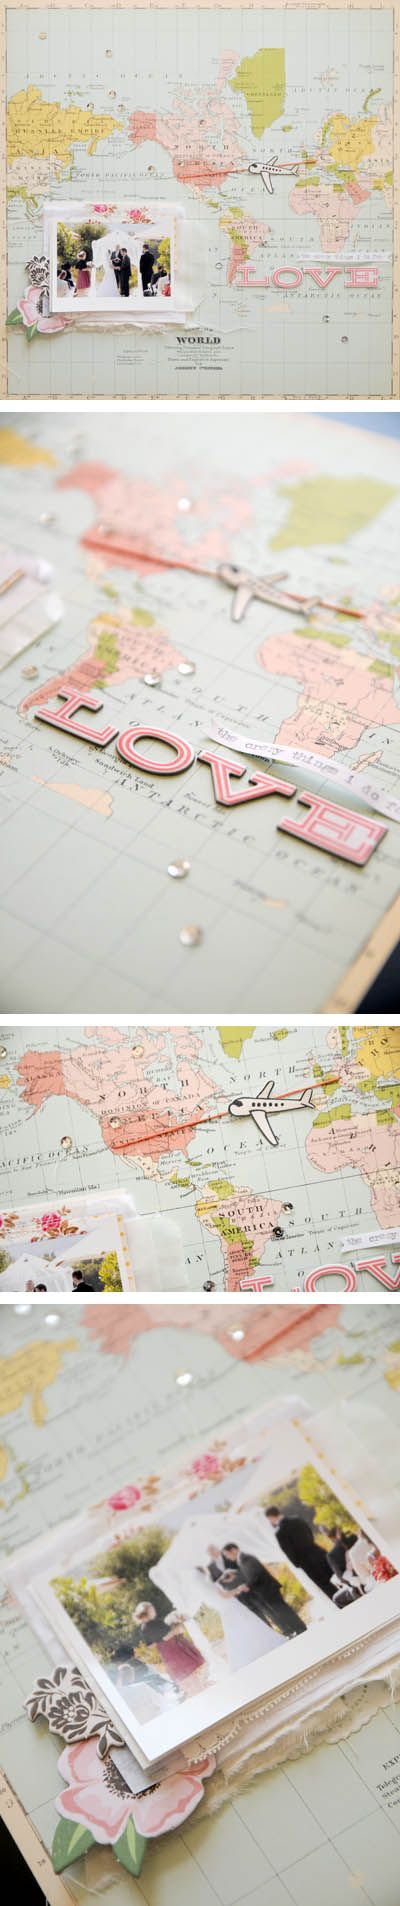 Scrapbook page using maps